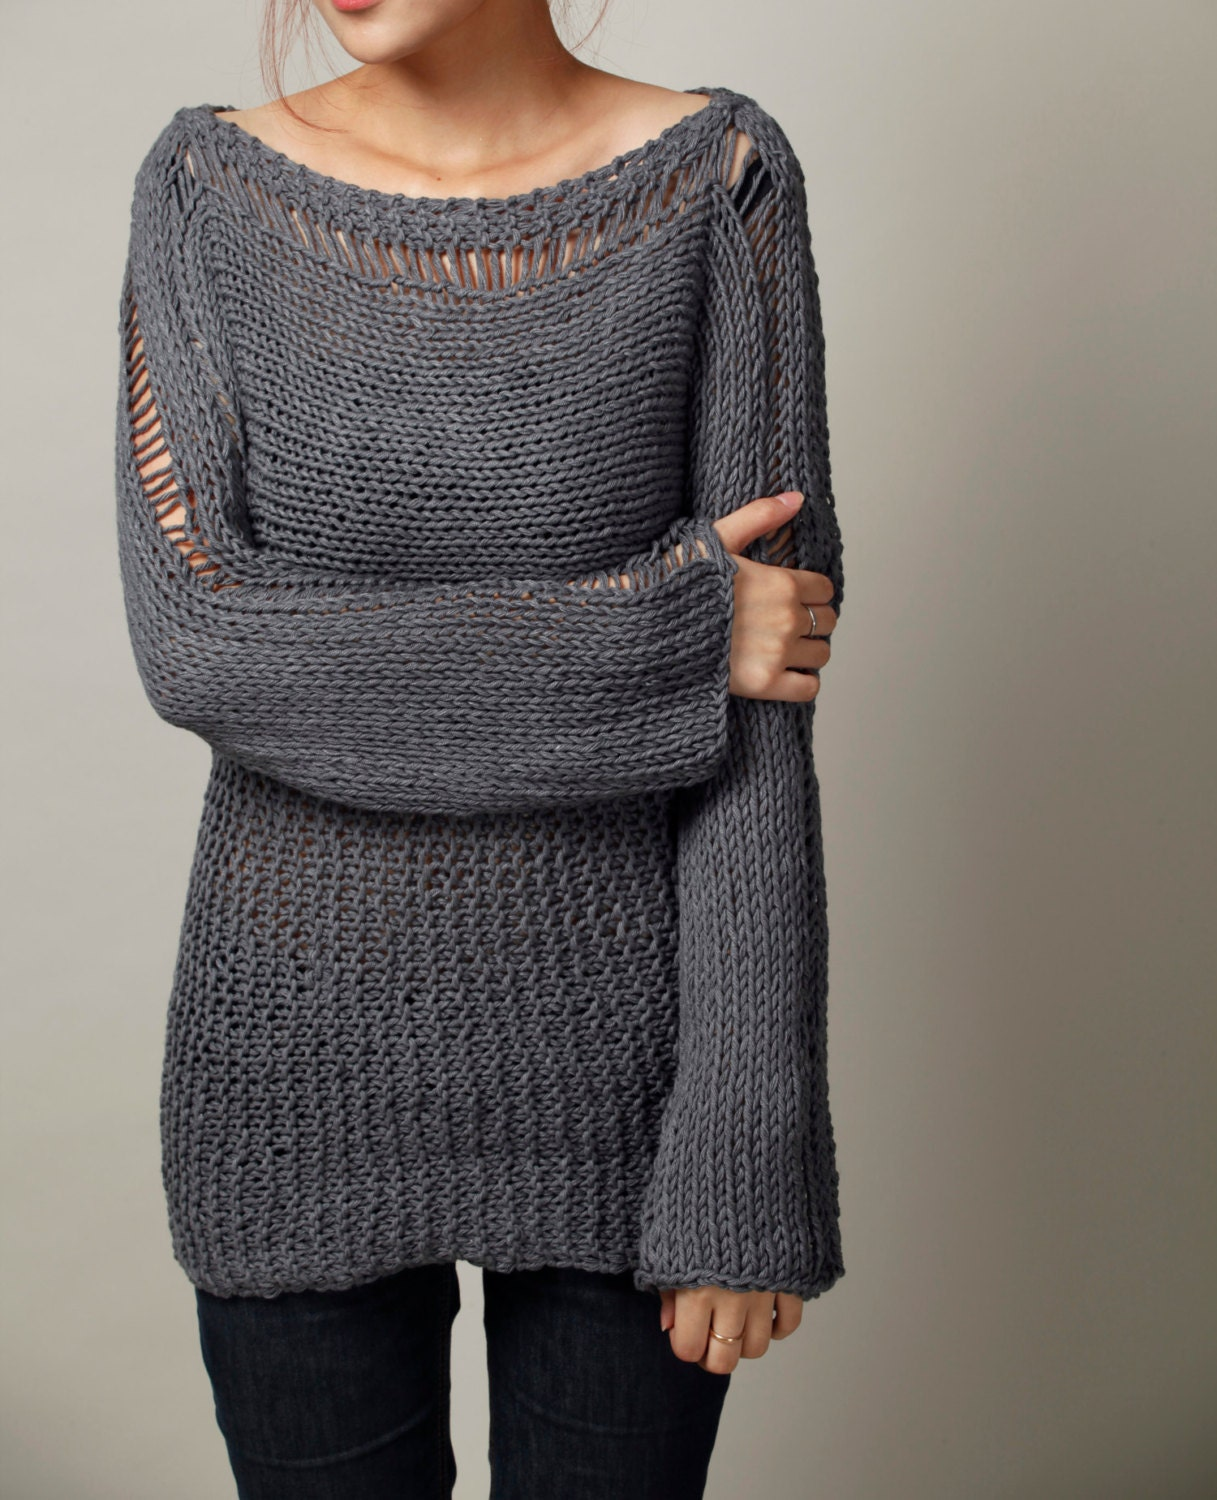 Hand Knit Woman Sweater Eco Cotton Oversized sweater in